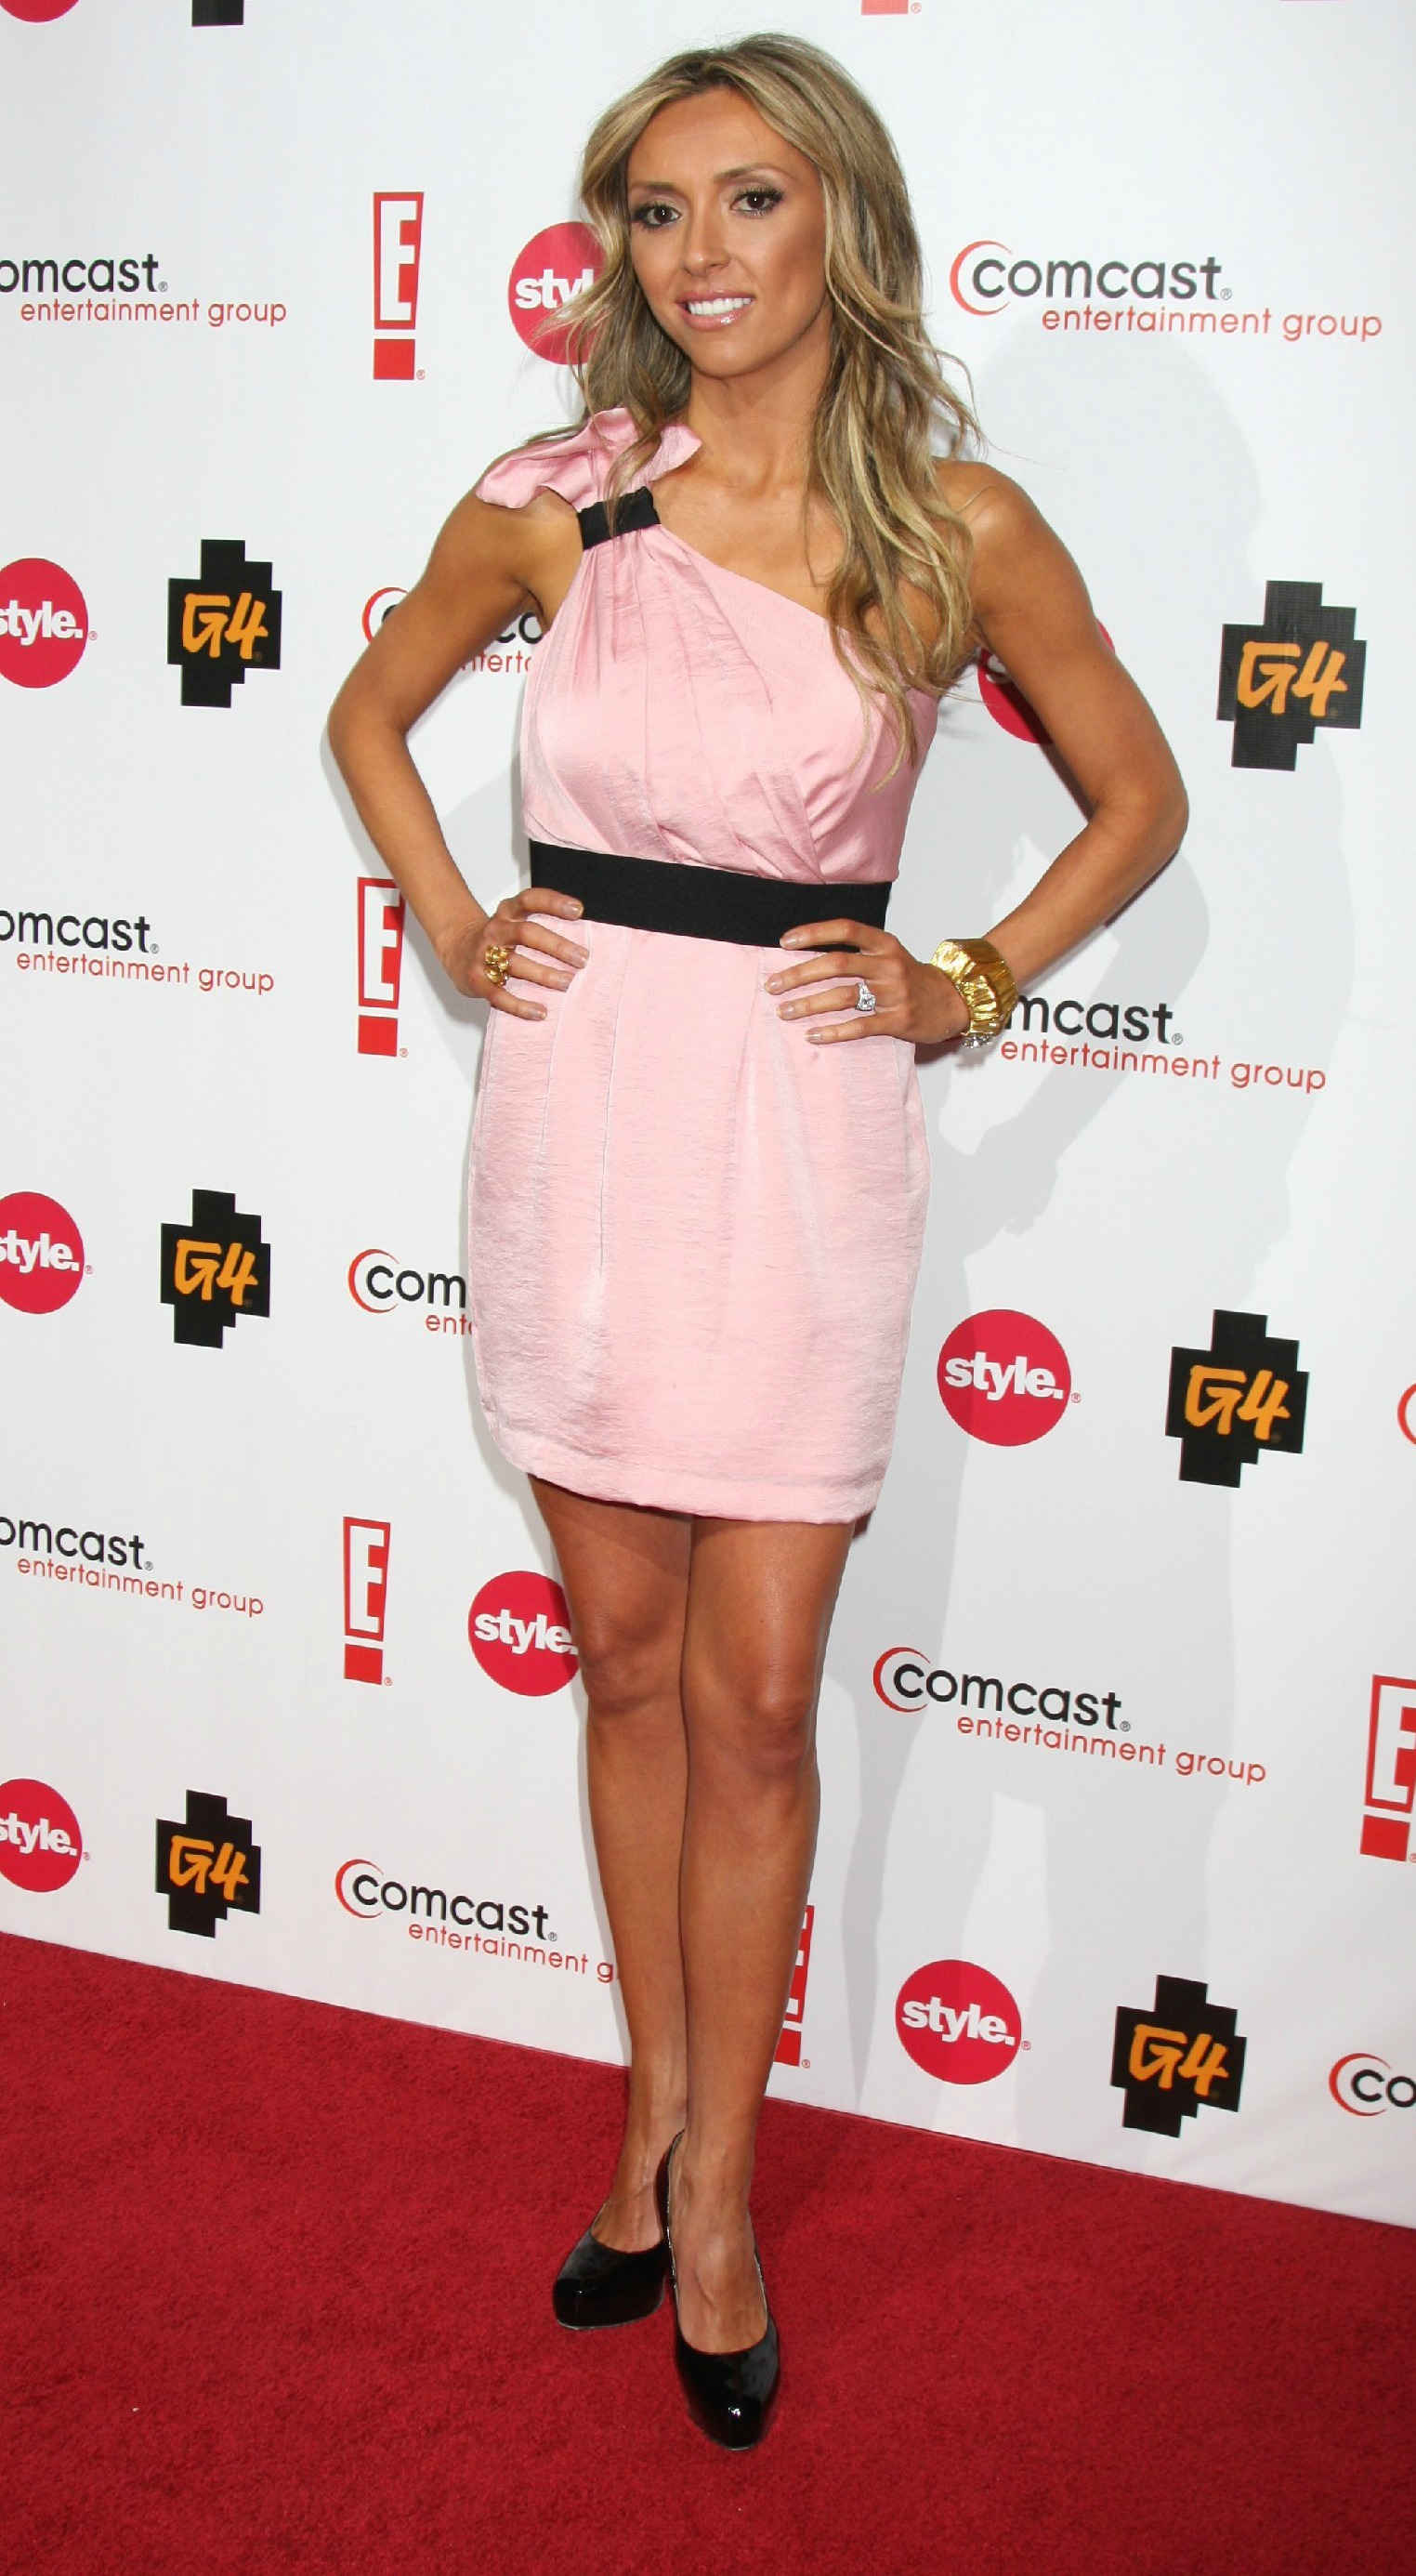 why is giuliana rancic so skinny? does she have an eating disorder?